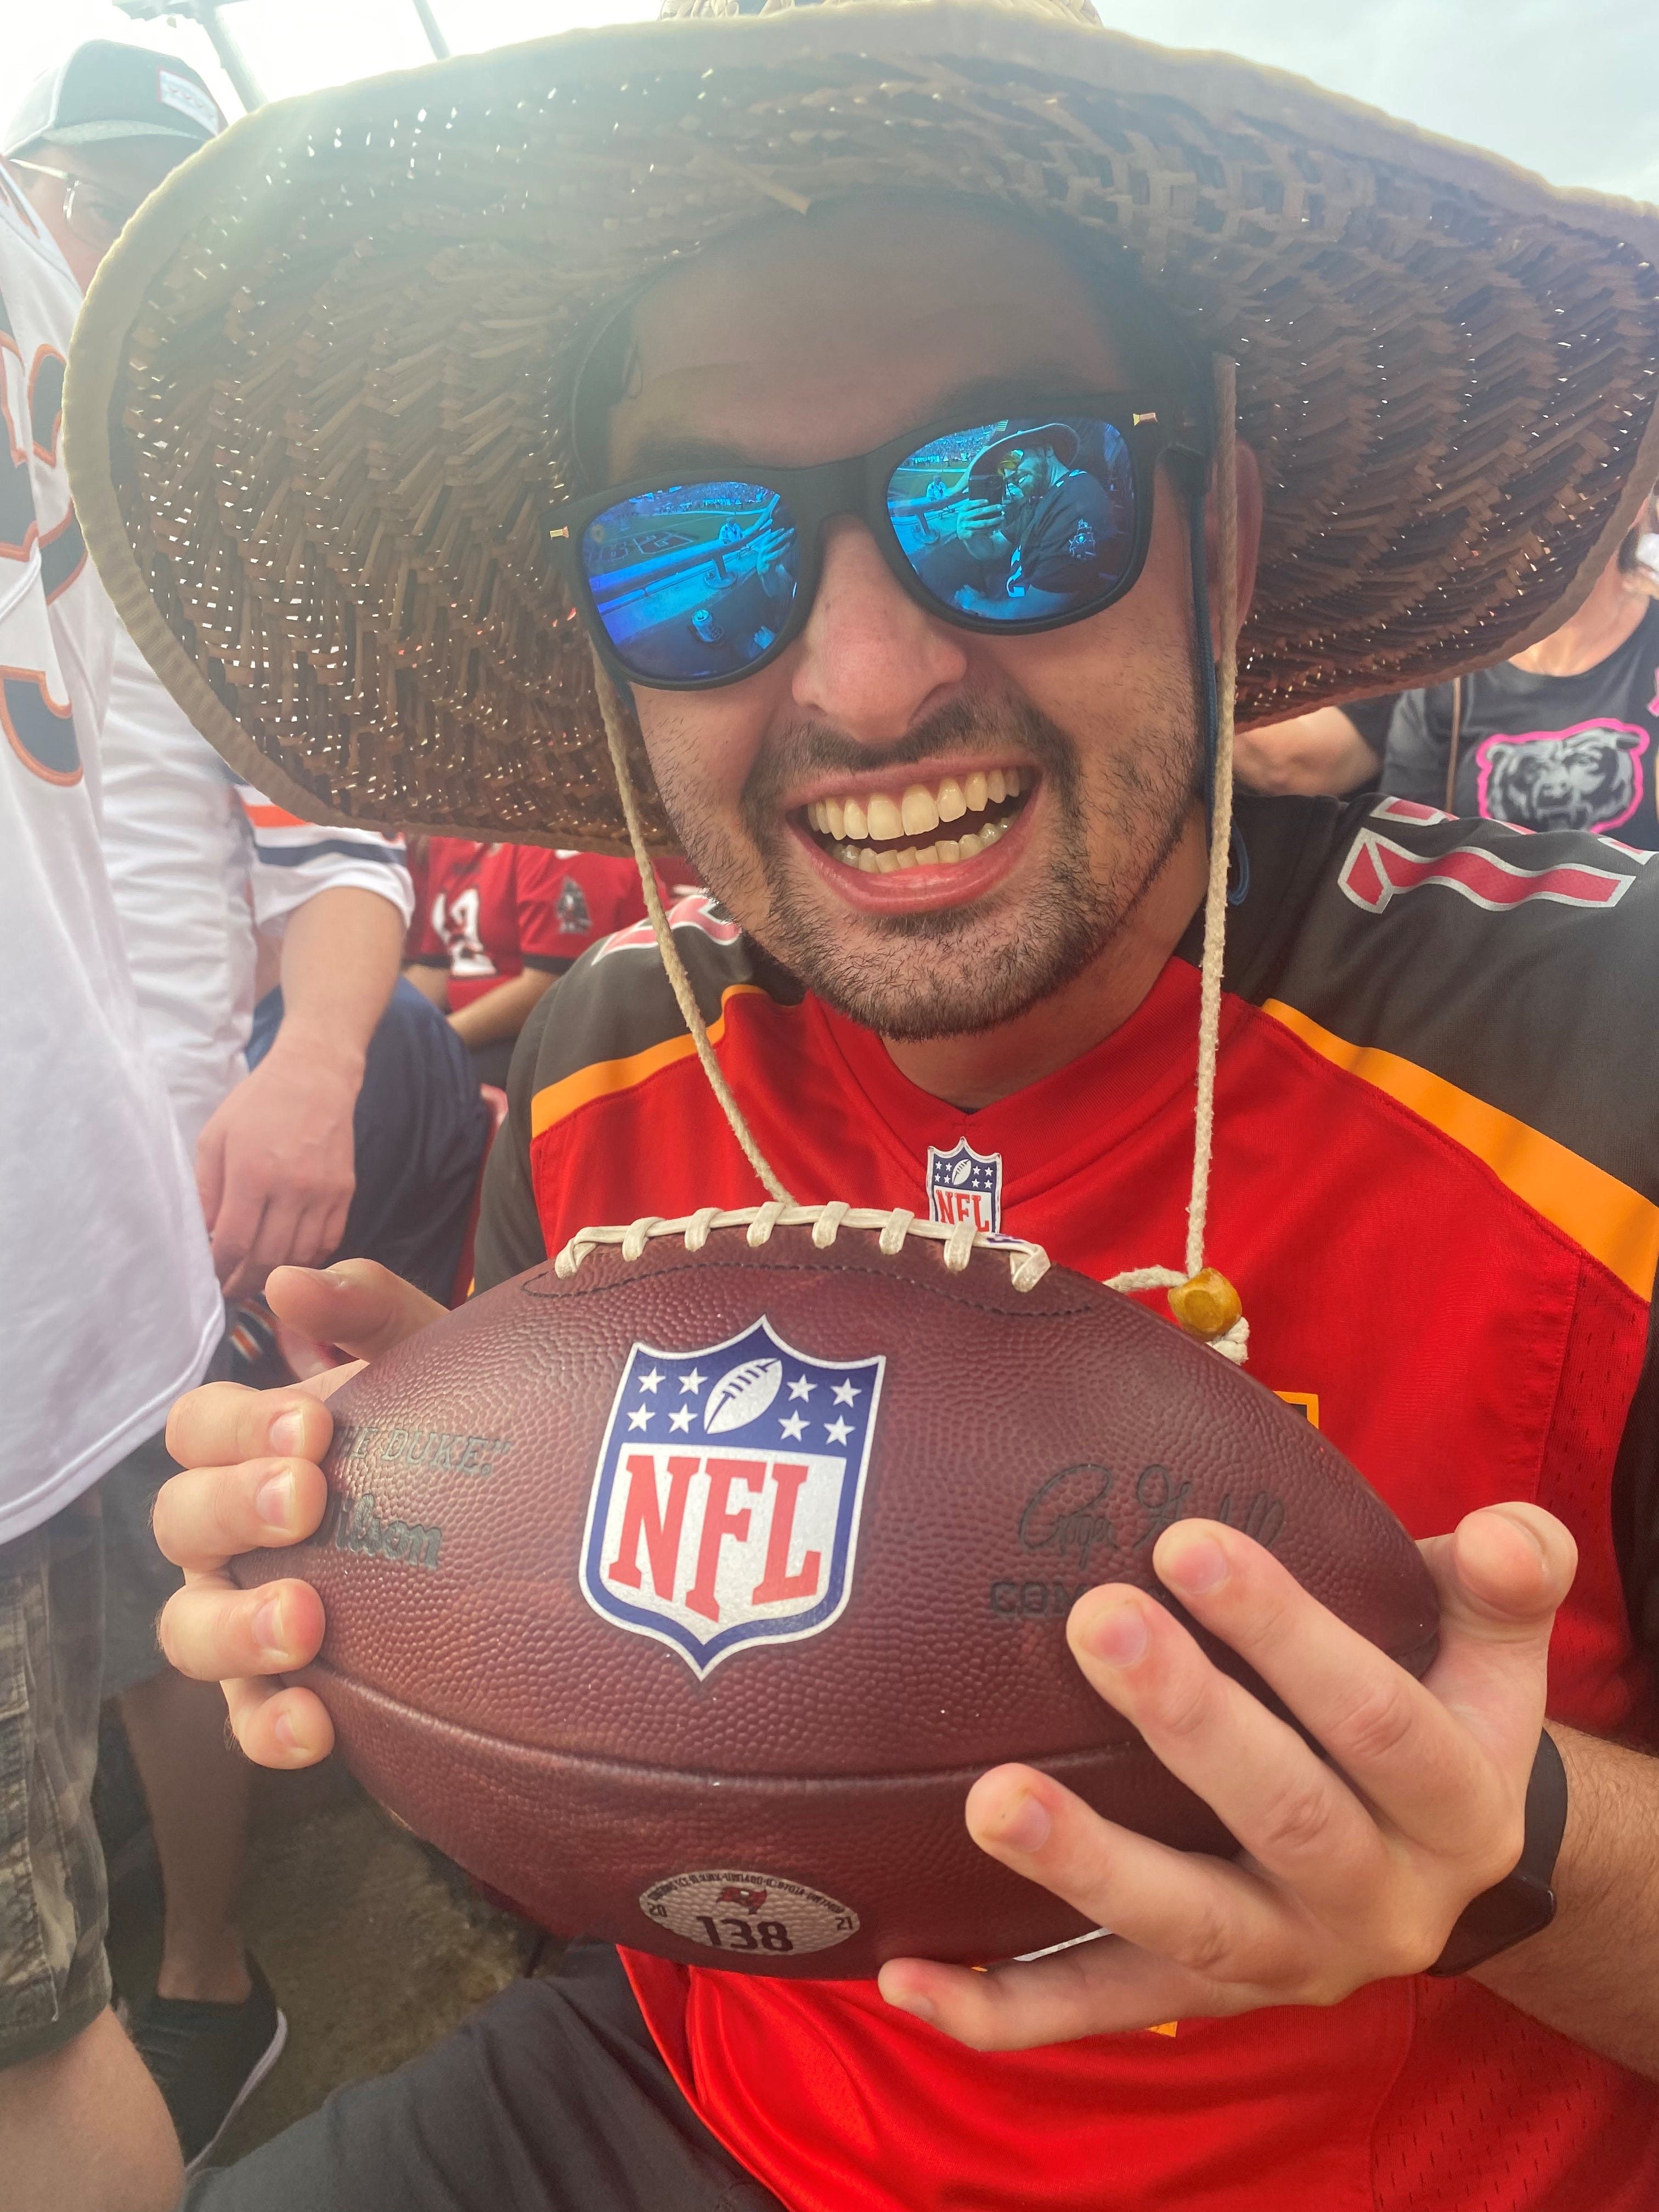 Tampa Bay Buccaneers fan gets Tom Brady's 600th touchdown ball then gives it up